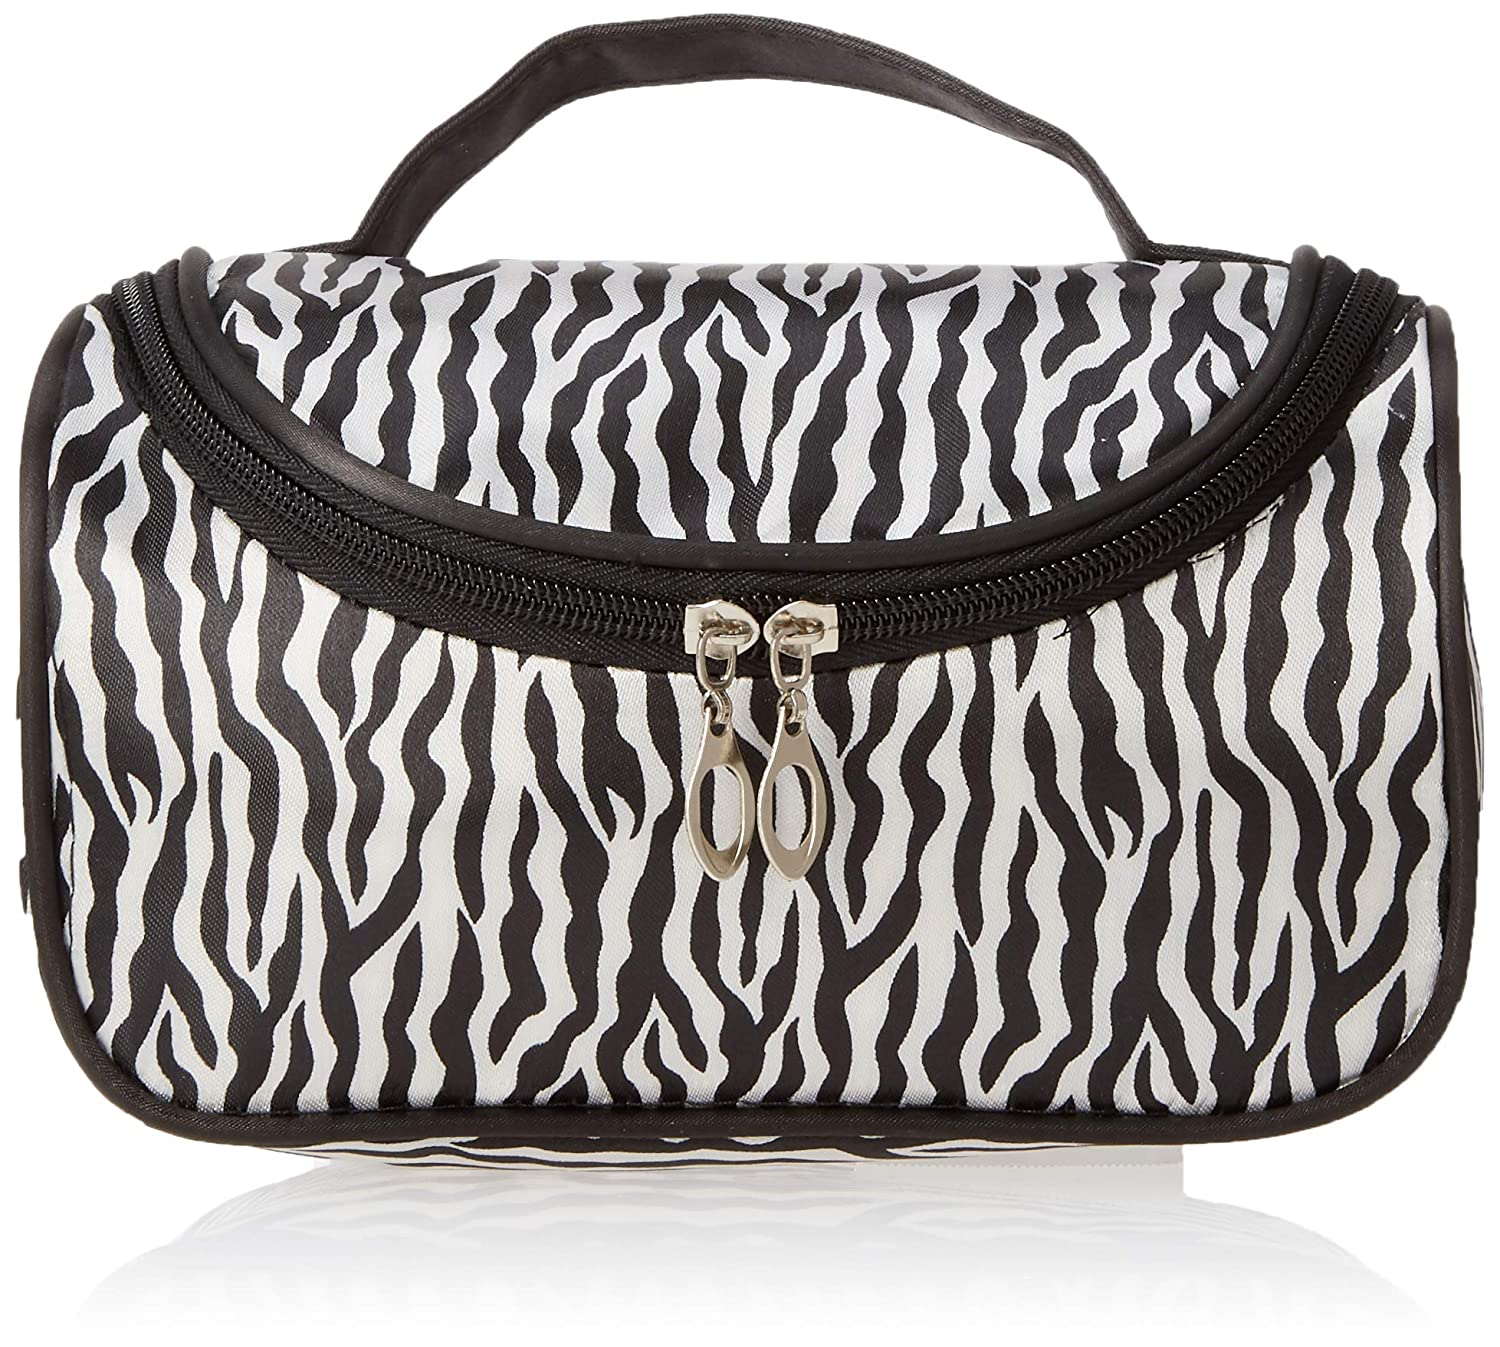 MUNISO Black zebra toiletry bag makeup bag,Portable zebra toiletry bag print bag,Waterproof zebra toiletry bag for women